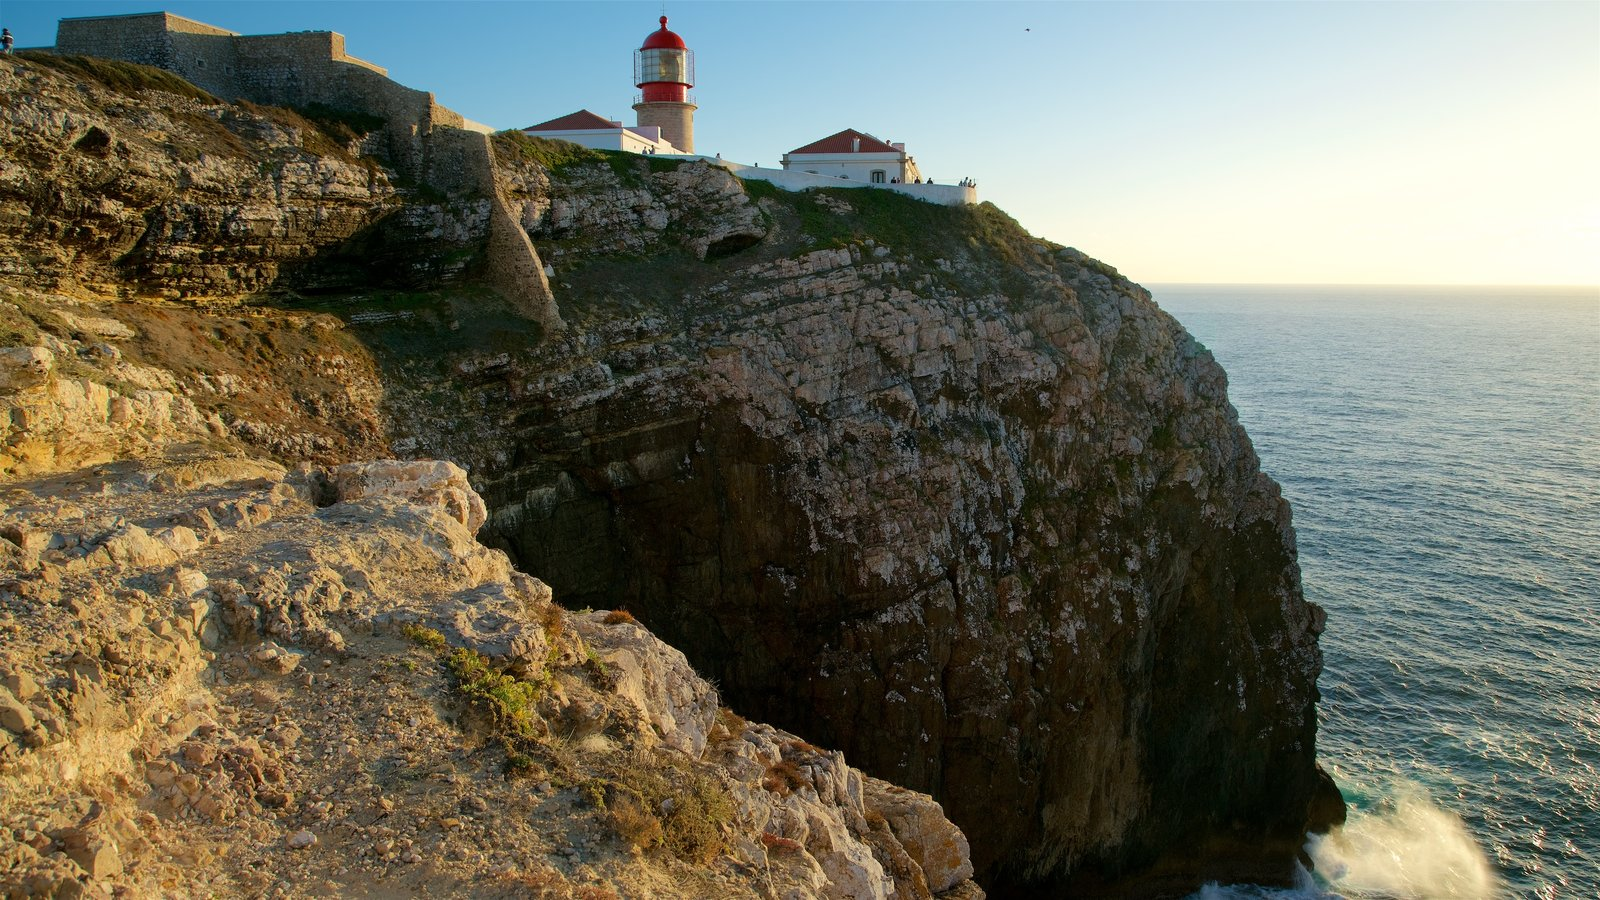 Cape St. Vincent Lighthouse which includes a lighthouse, general coastal views and rocky coastline